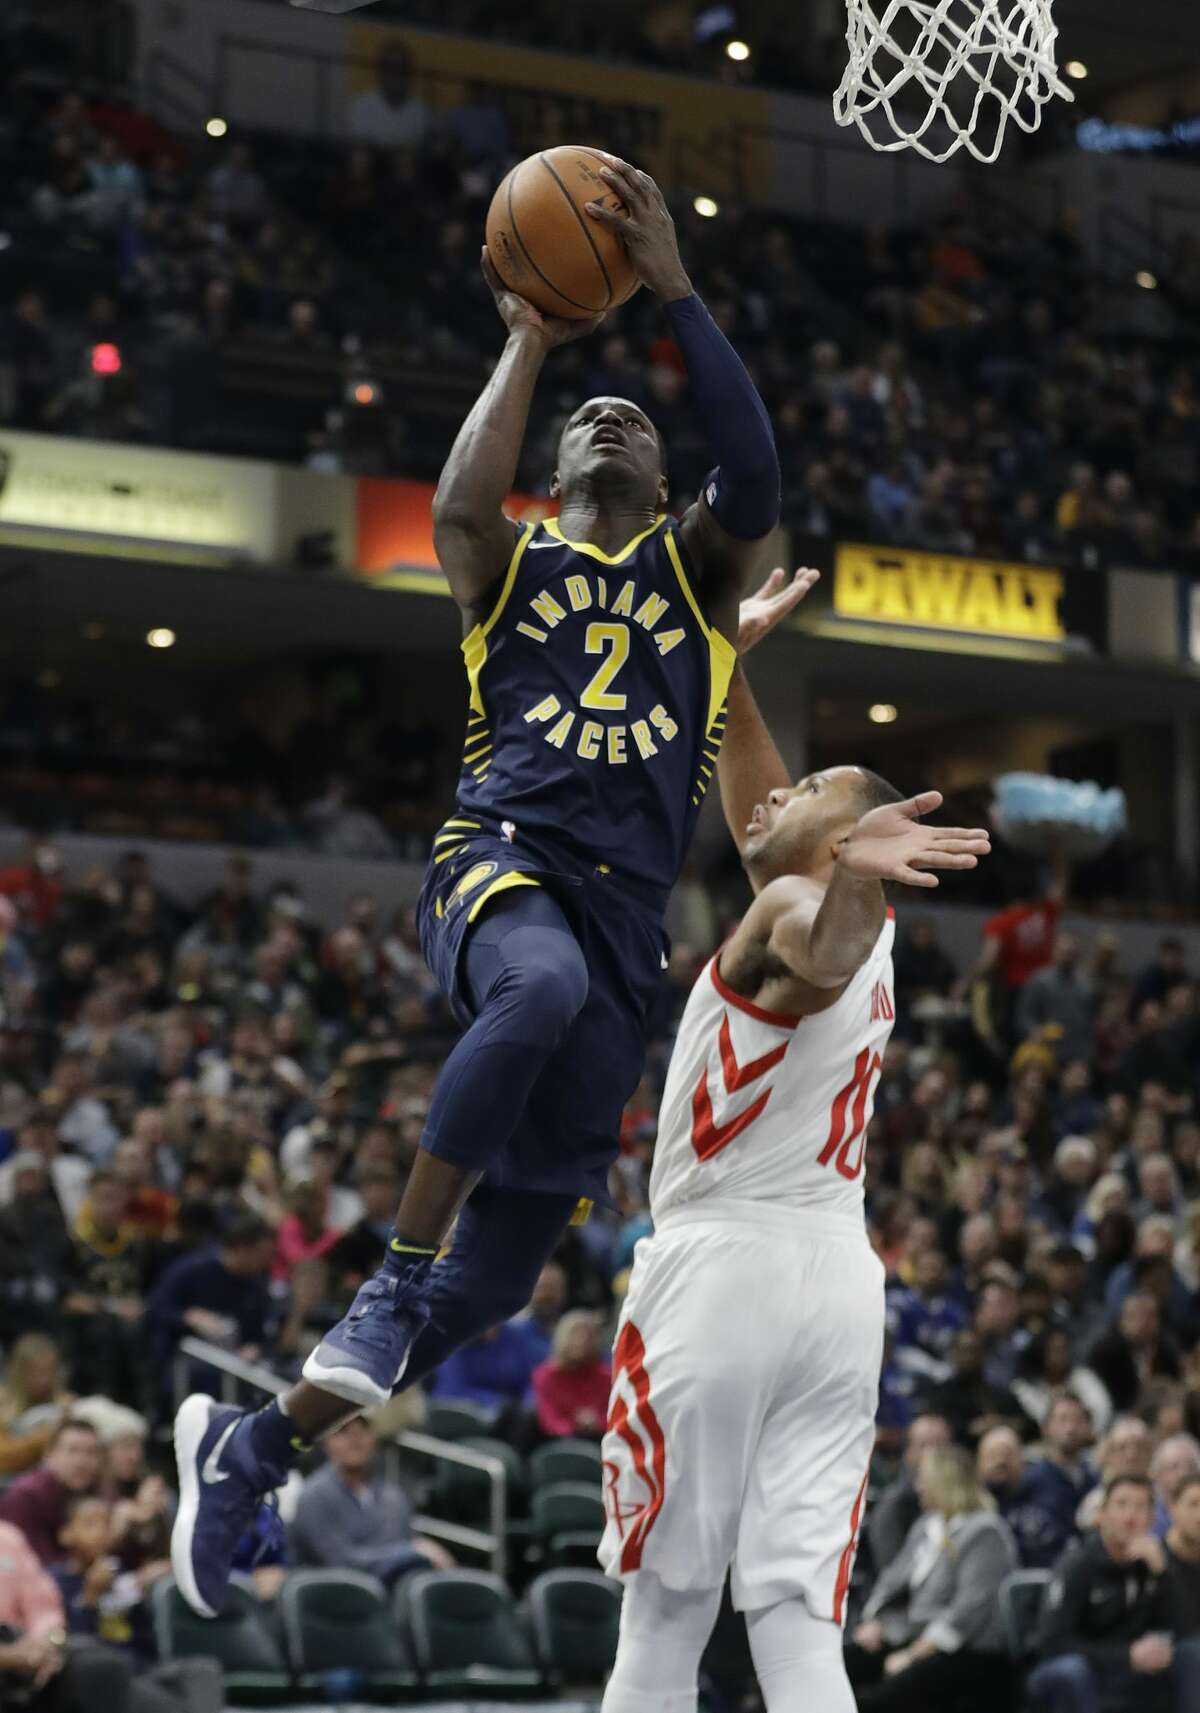 Indiana Pacers' Darren Collison (2) puts up a shot against Houston Rockets' Eric Gordon (10) during the second half of an NBA basketball game, Sunday, Nov. 12, 2017, in Indianapolis. Houston won 118-95. (AP Photo/Darron Cummings)